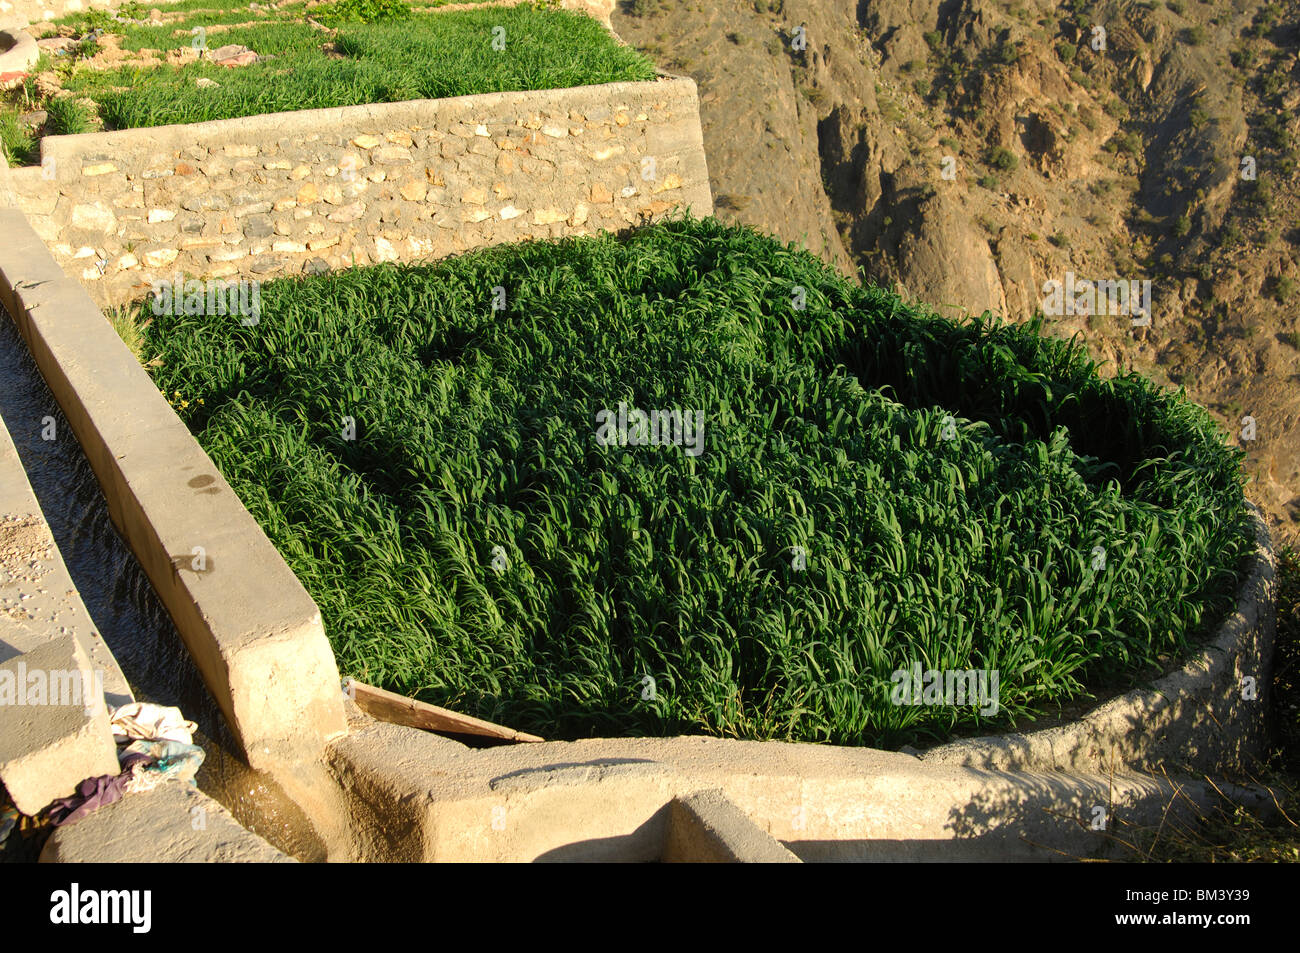 Tiny grain plot in the village of Ash Shirayjah, Saiq Plateau, Jebel al Alkhdar, Sultanate of Oman - Stock Image